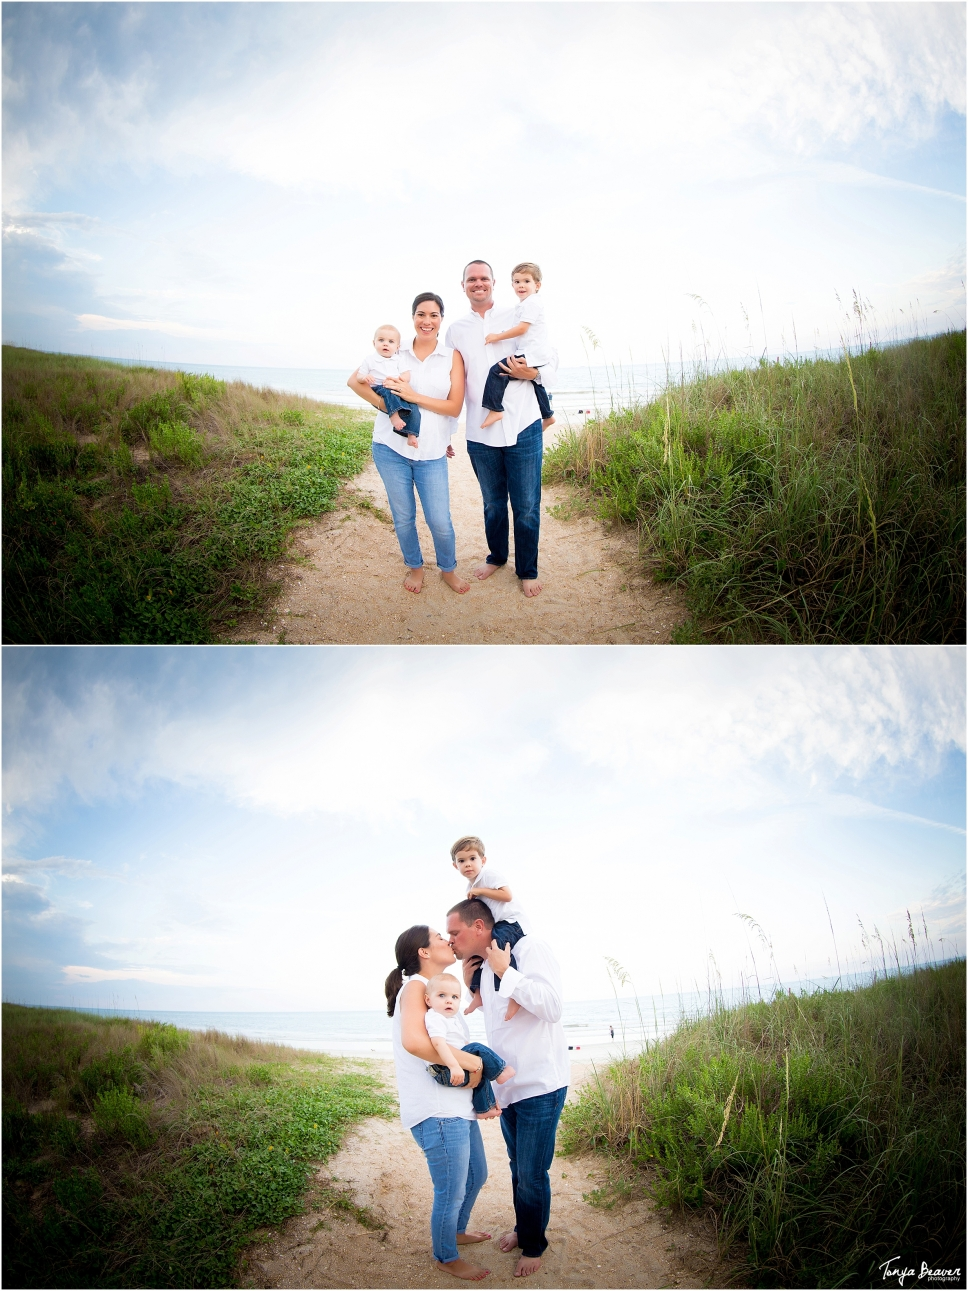 Jacksonville family photographer, ponte vedra family photographer, tonya beaver photography, beach family photos299